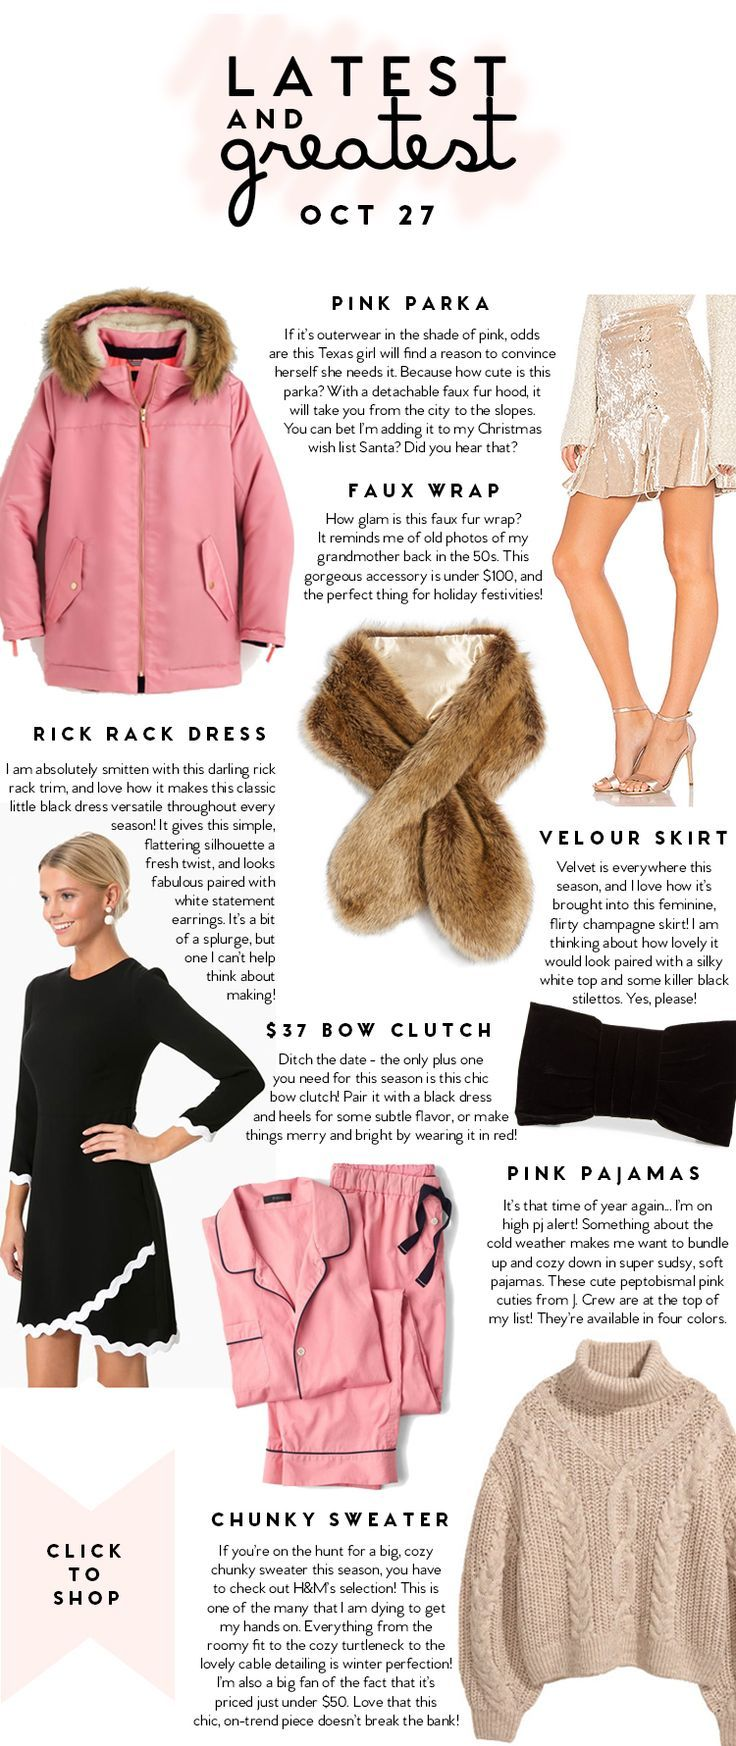 Latest and Greatest | October 27 | best fashion and beauty this week || a lonestar state of southern